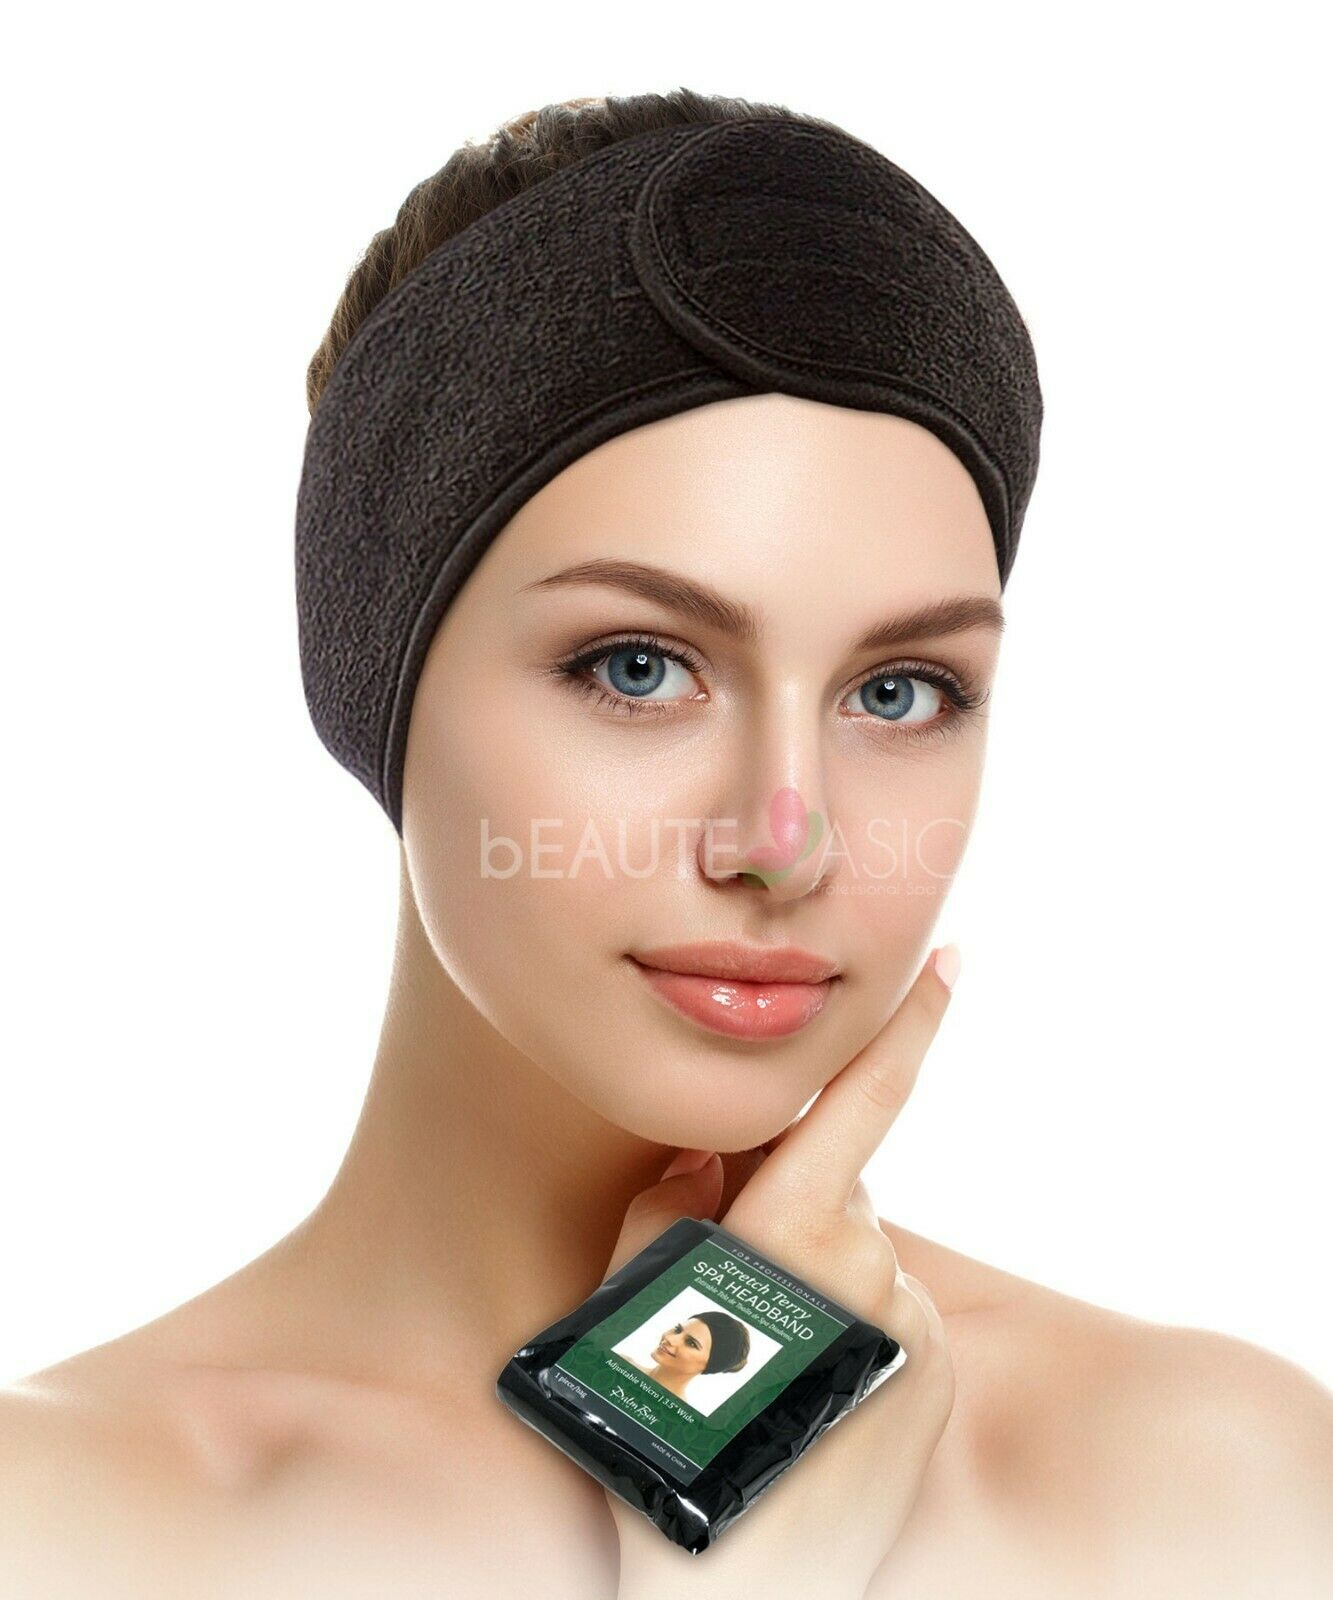 AH1008Bx1 Salon and Spa Black Stretch Terry Spa Headband for Facial Makeup